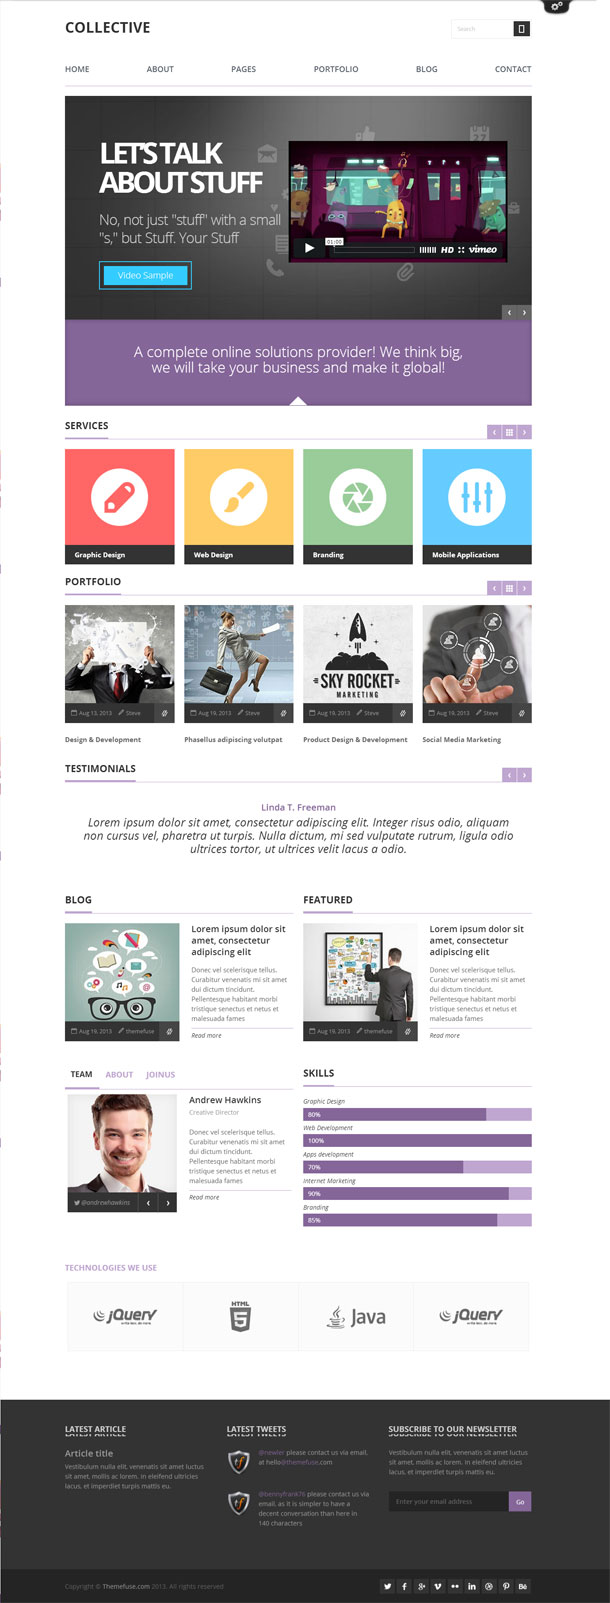 Collective Great WordPress Theme for 2014 image